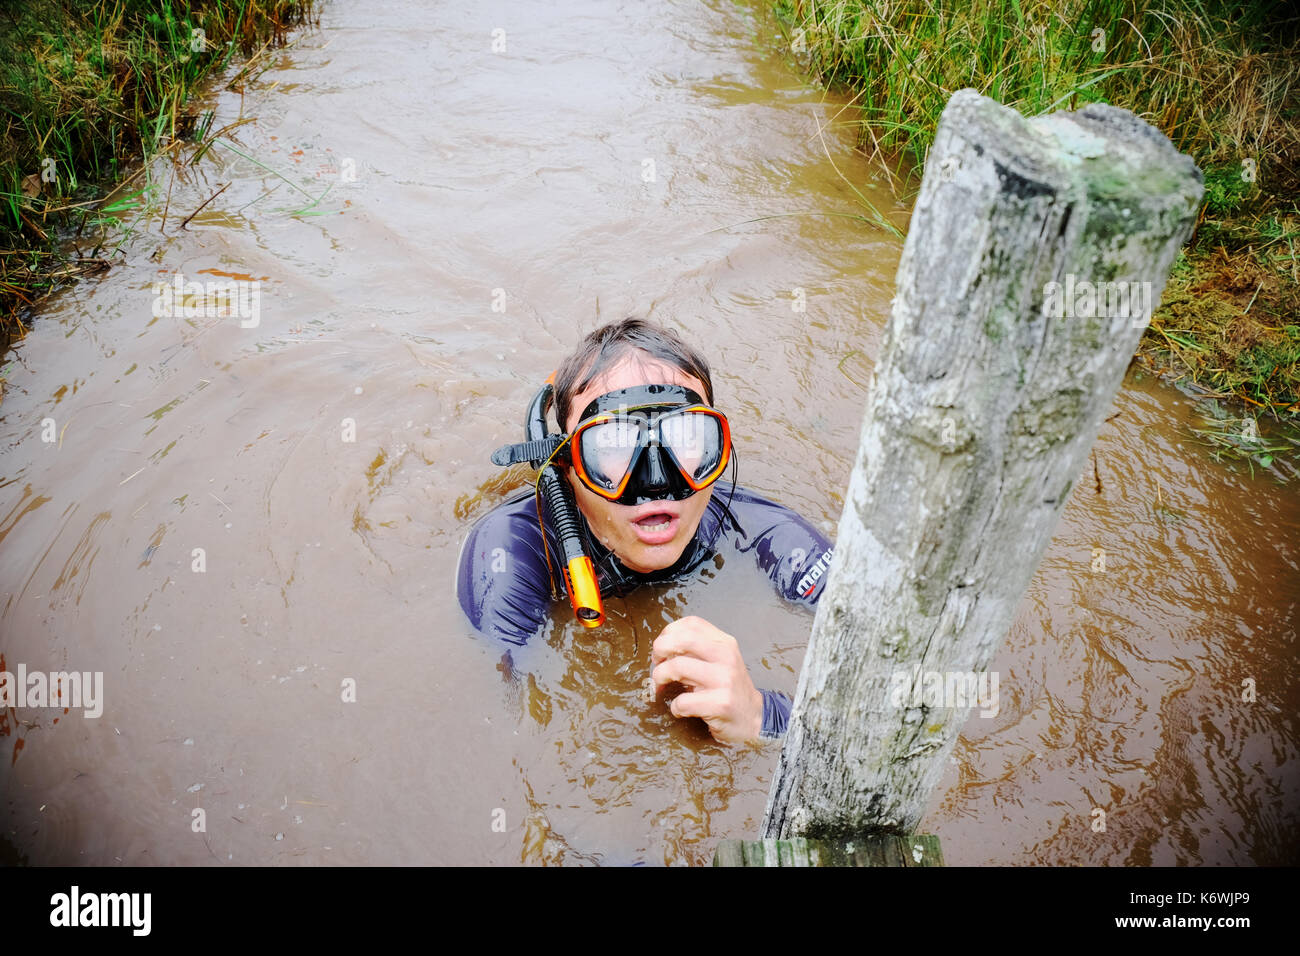 World Bog Snorkelling Championships Wales a cold exhausted competitor reaches the finish post - Stock Image